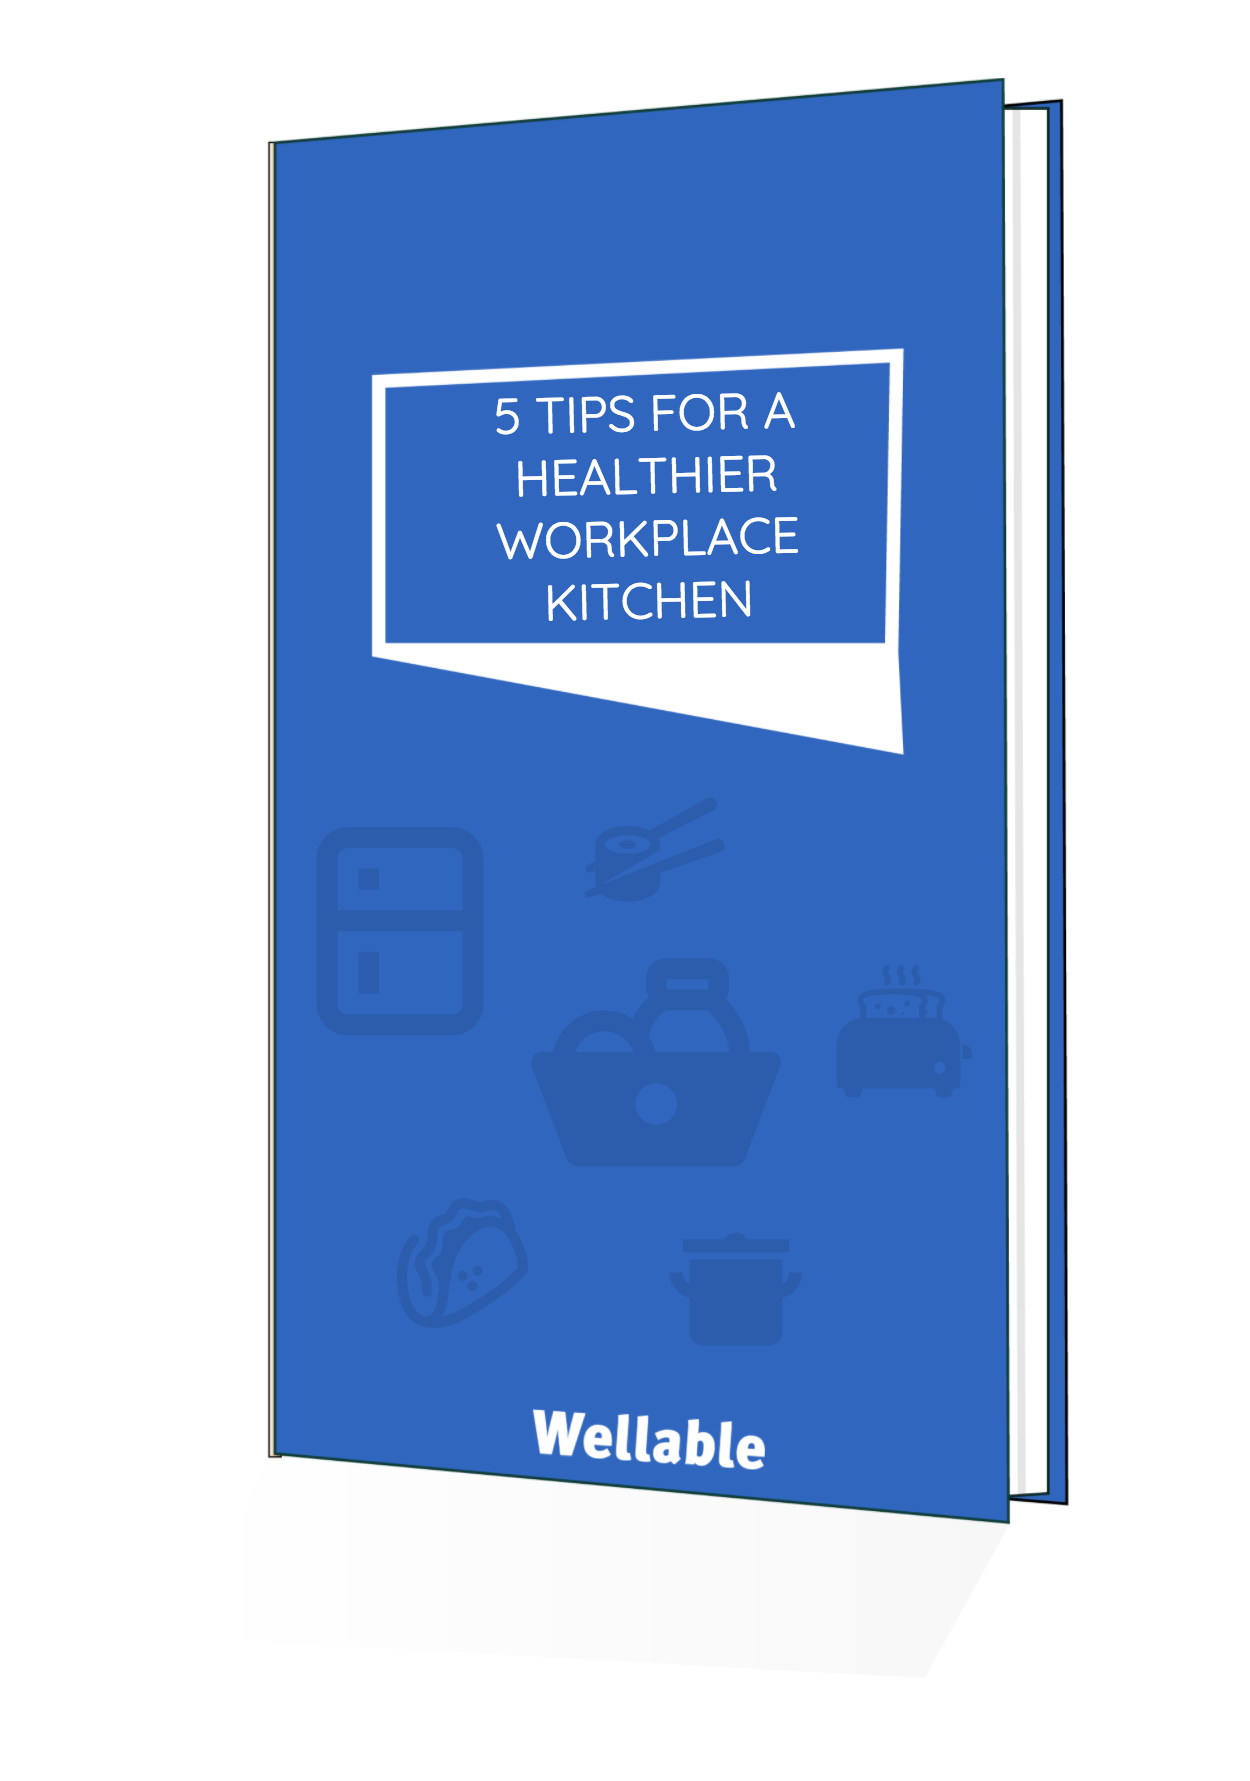 5 TIPS FOR A HEALTHIER WORKPLACE KITCHEN.png